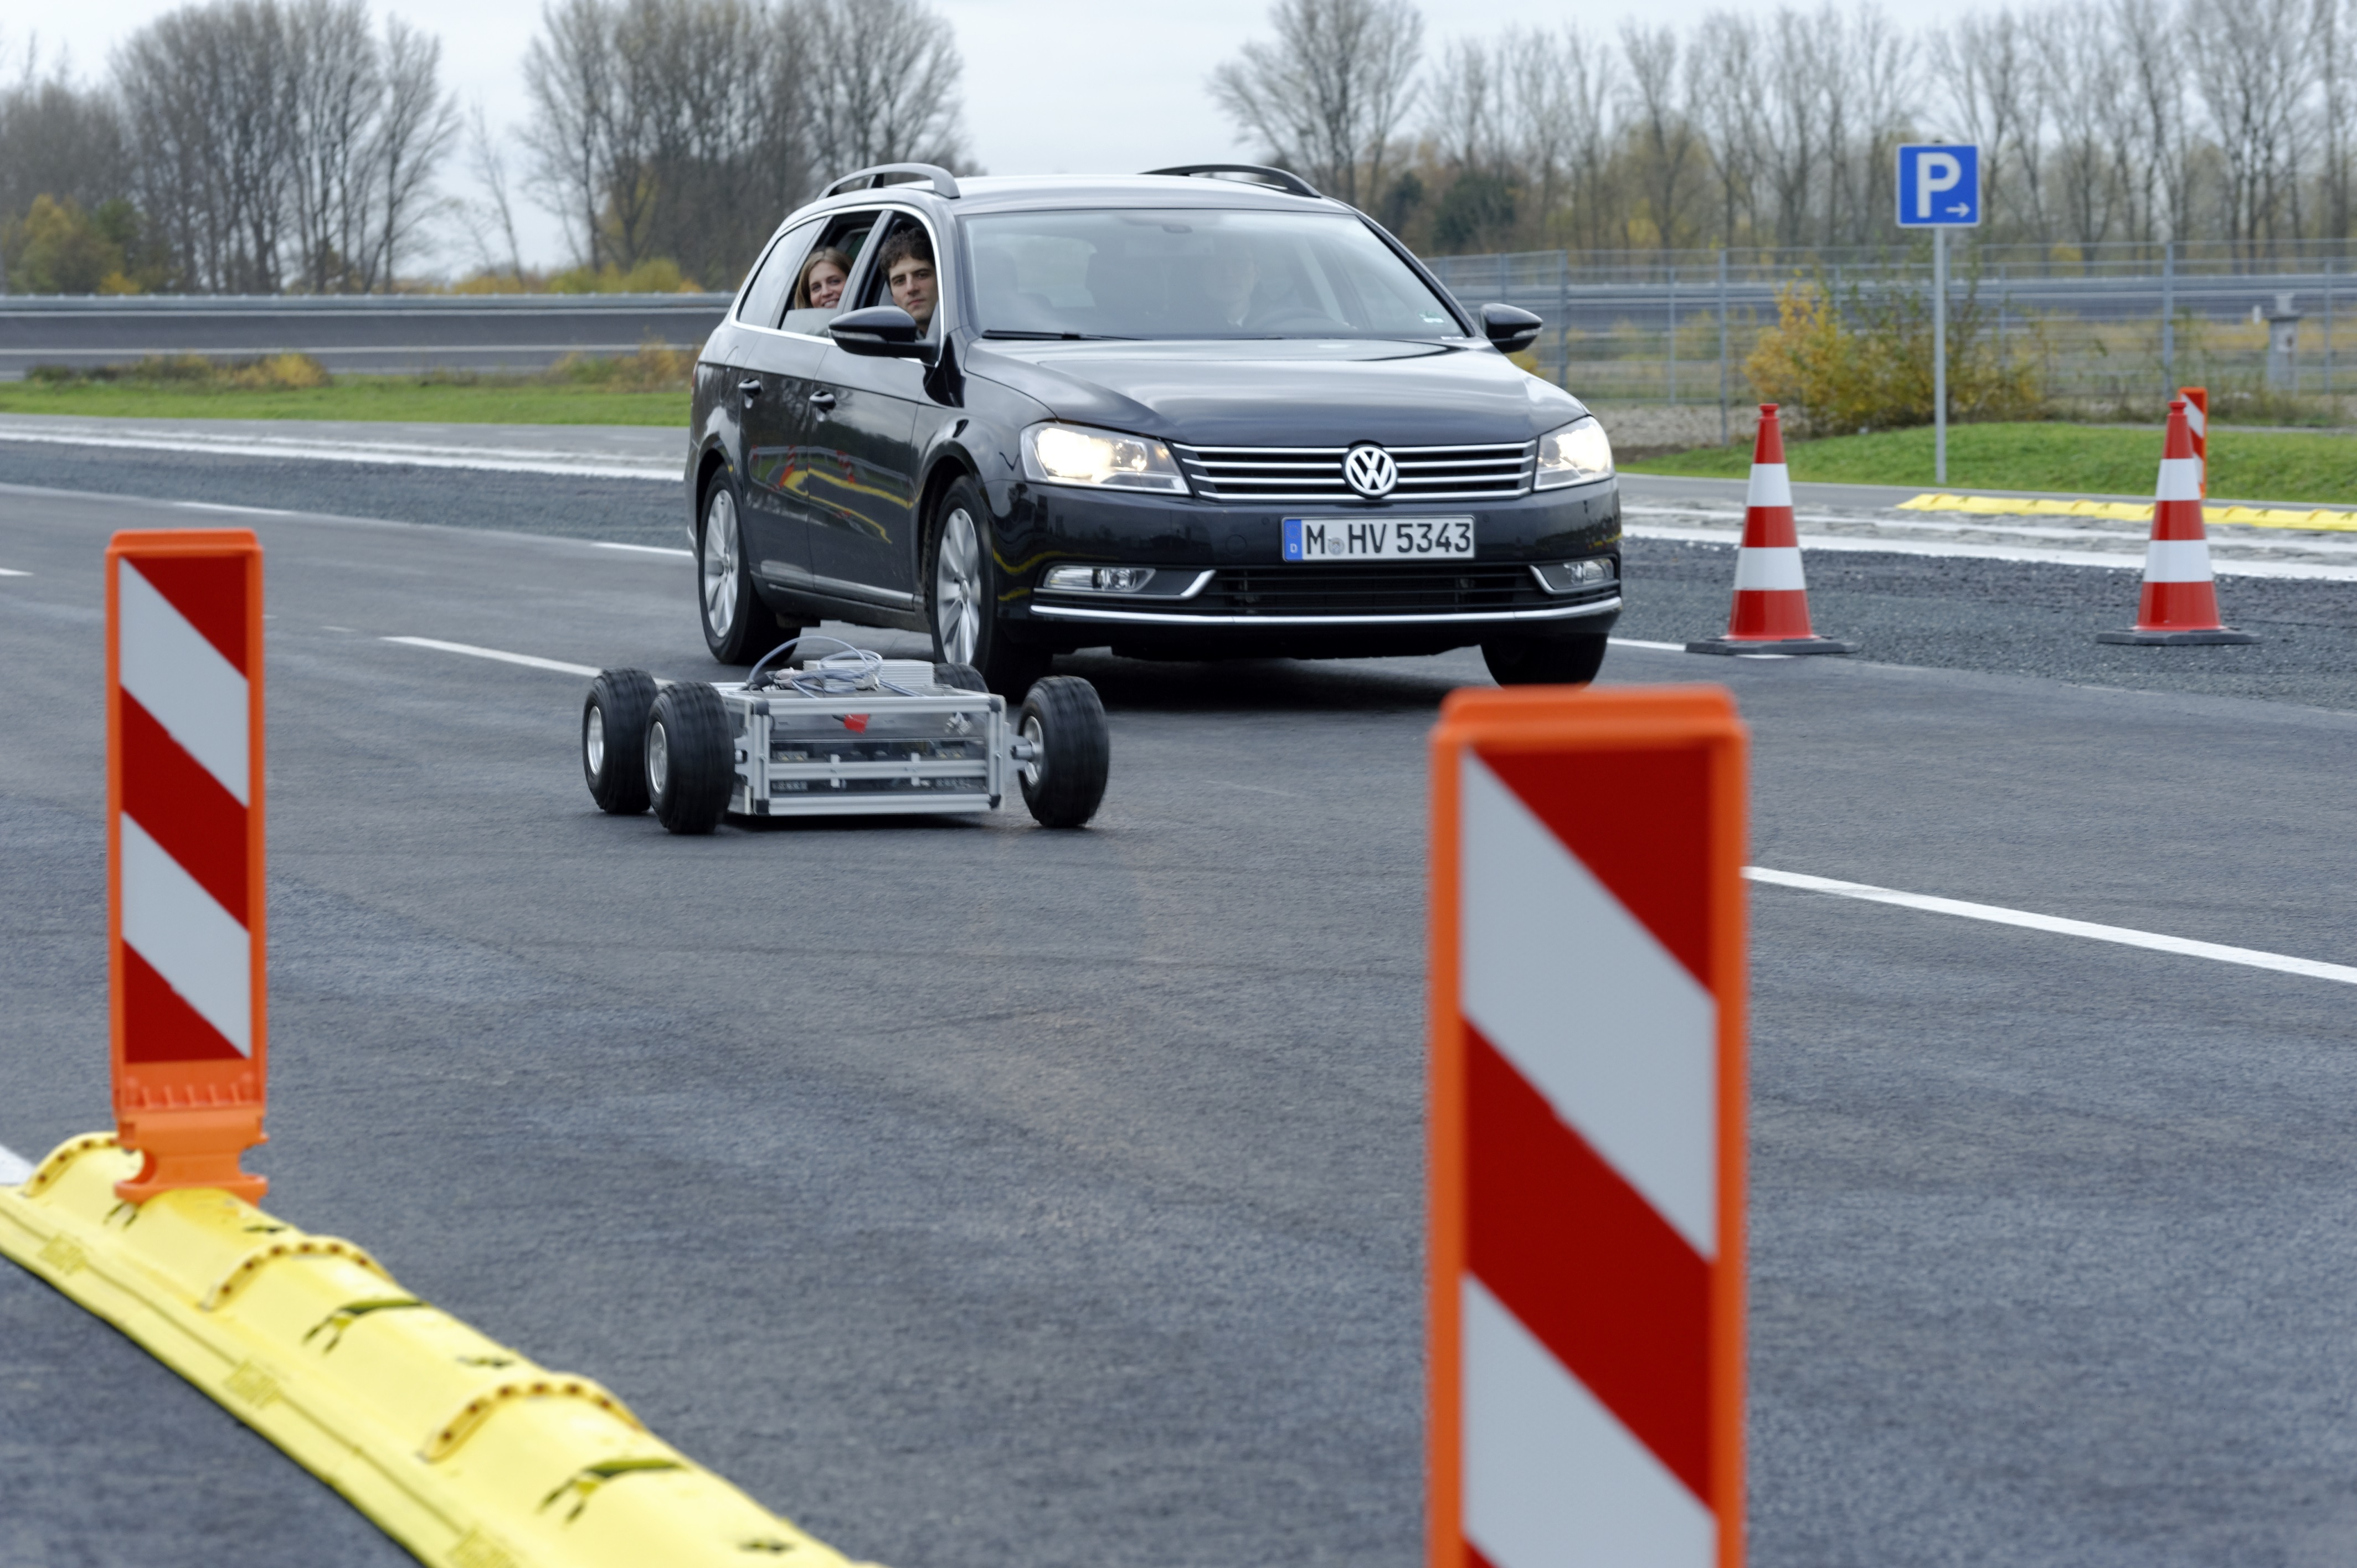 The satellite-guided IRT buggy is controlled by the passenger of the car, which is following the buggy in its background.